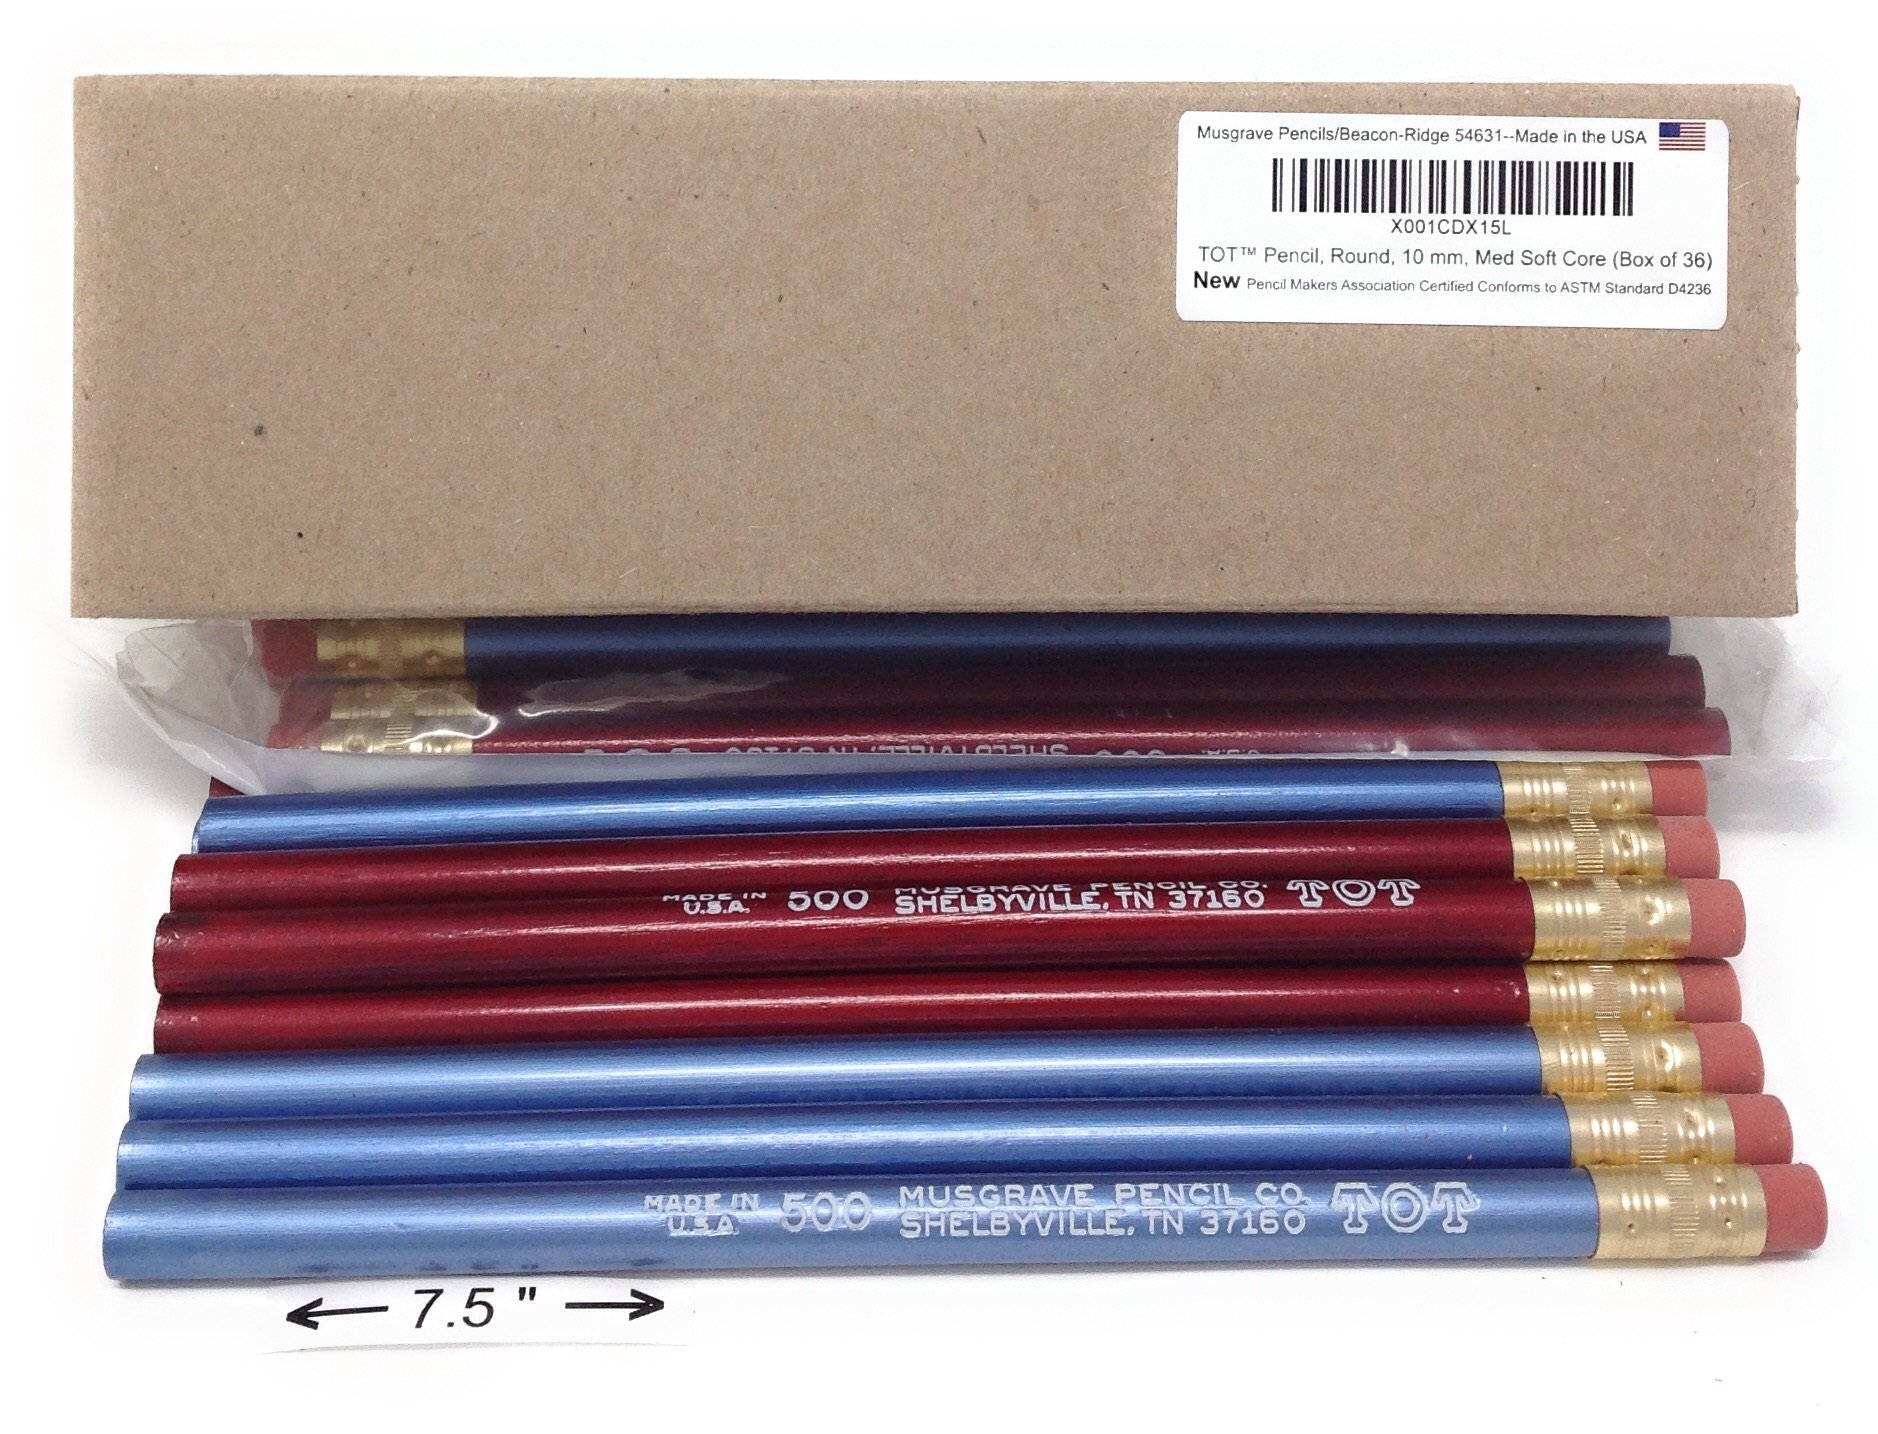 Jumbo TOT pencil, Round, 10mm Metallic Blue and Red, Med Soft Core (Box of 36)